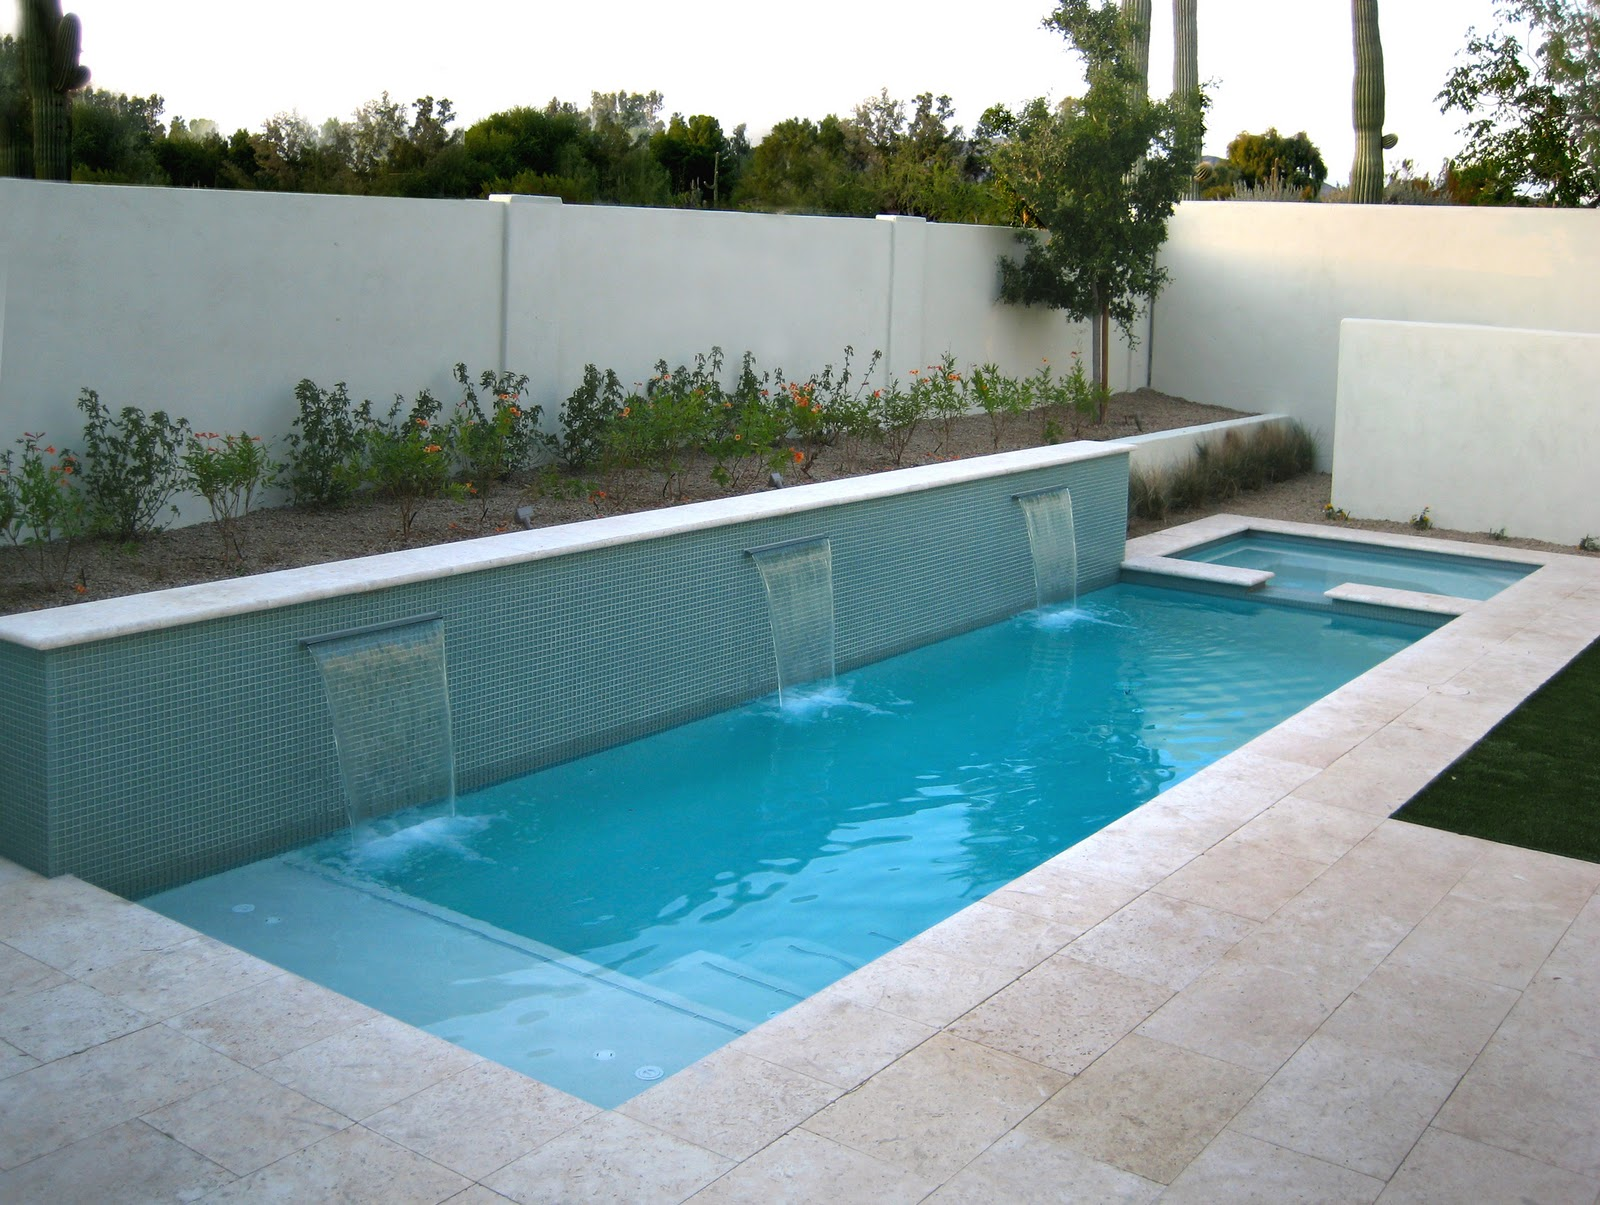 swimming pools in small spaces alpentile glass tile